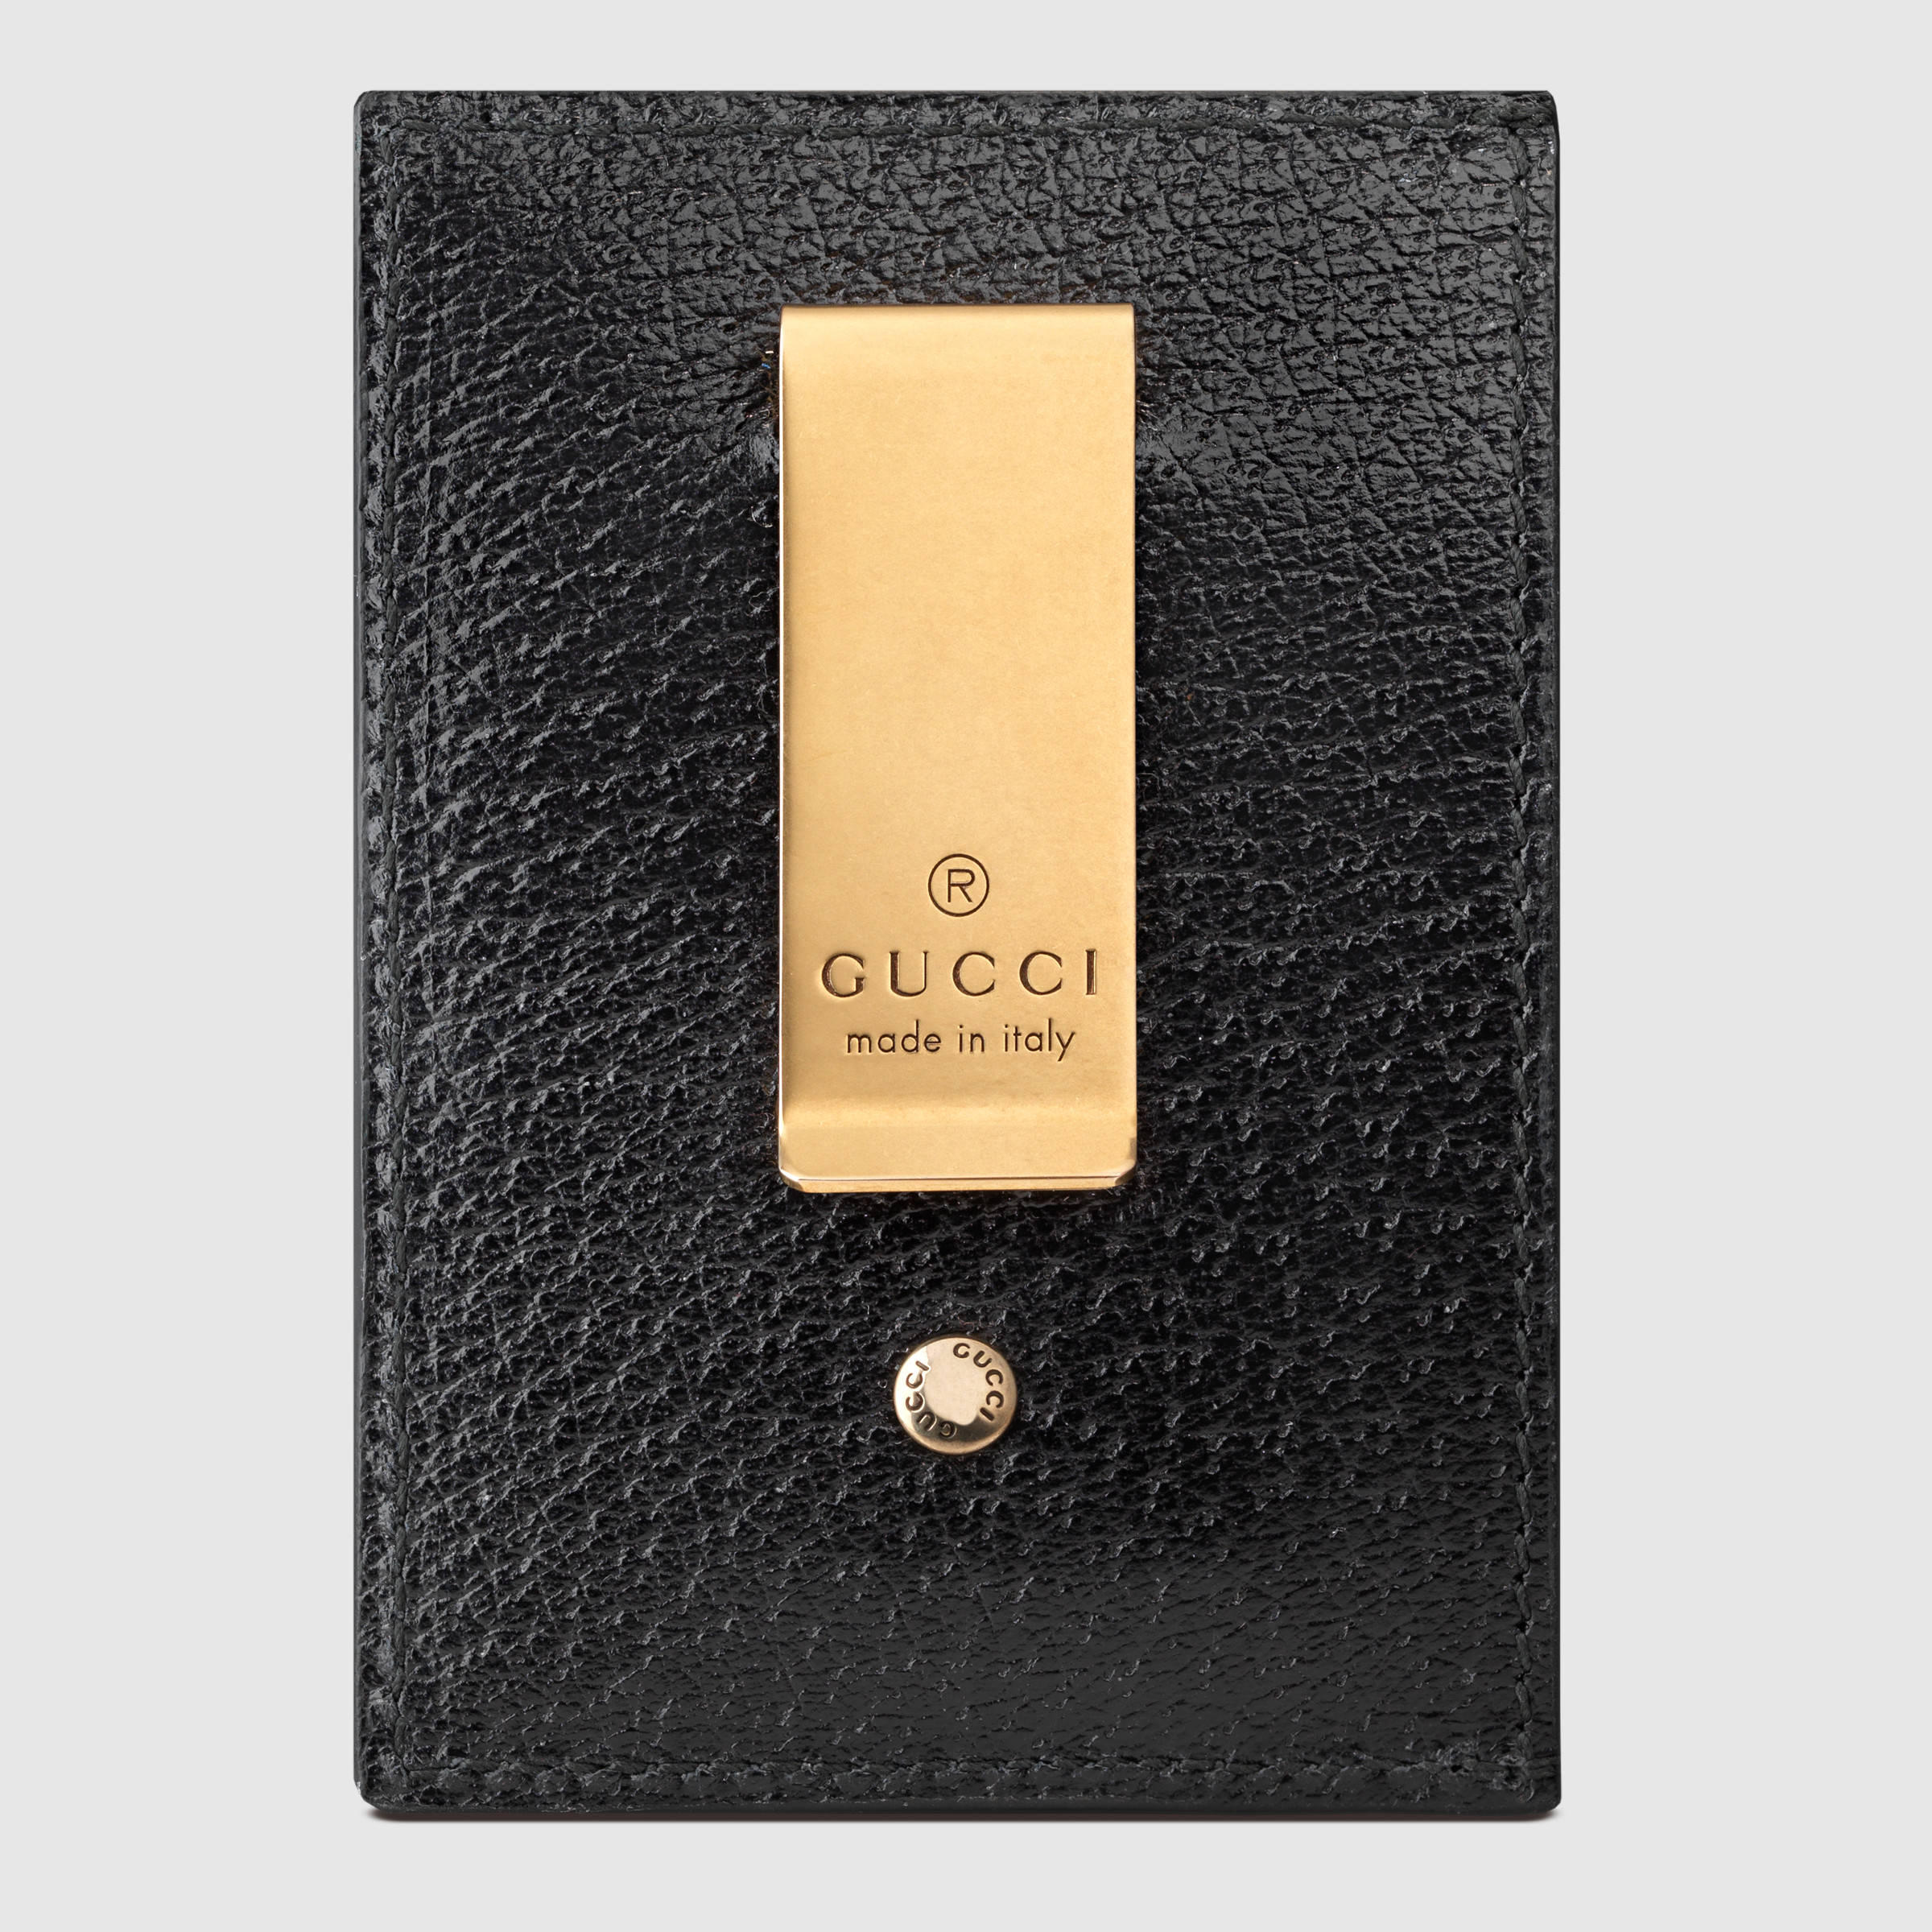 Gucci Money Clip | Chanel Wallets Saks | Gucci Mens Trifold Wallet